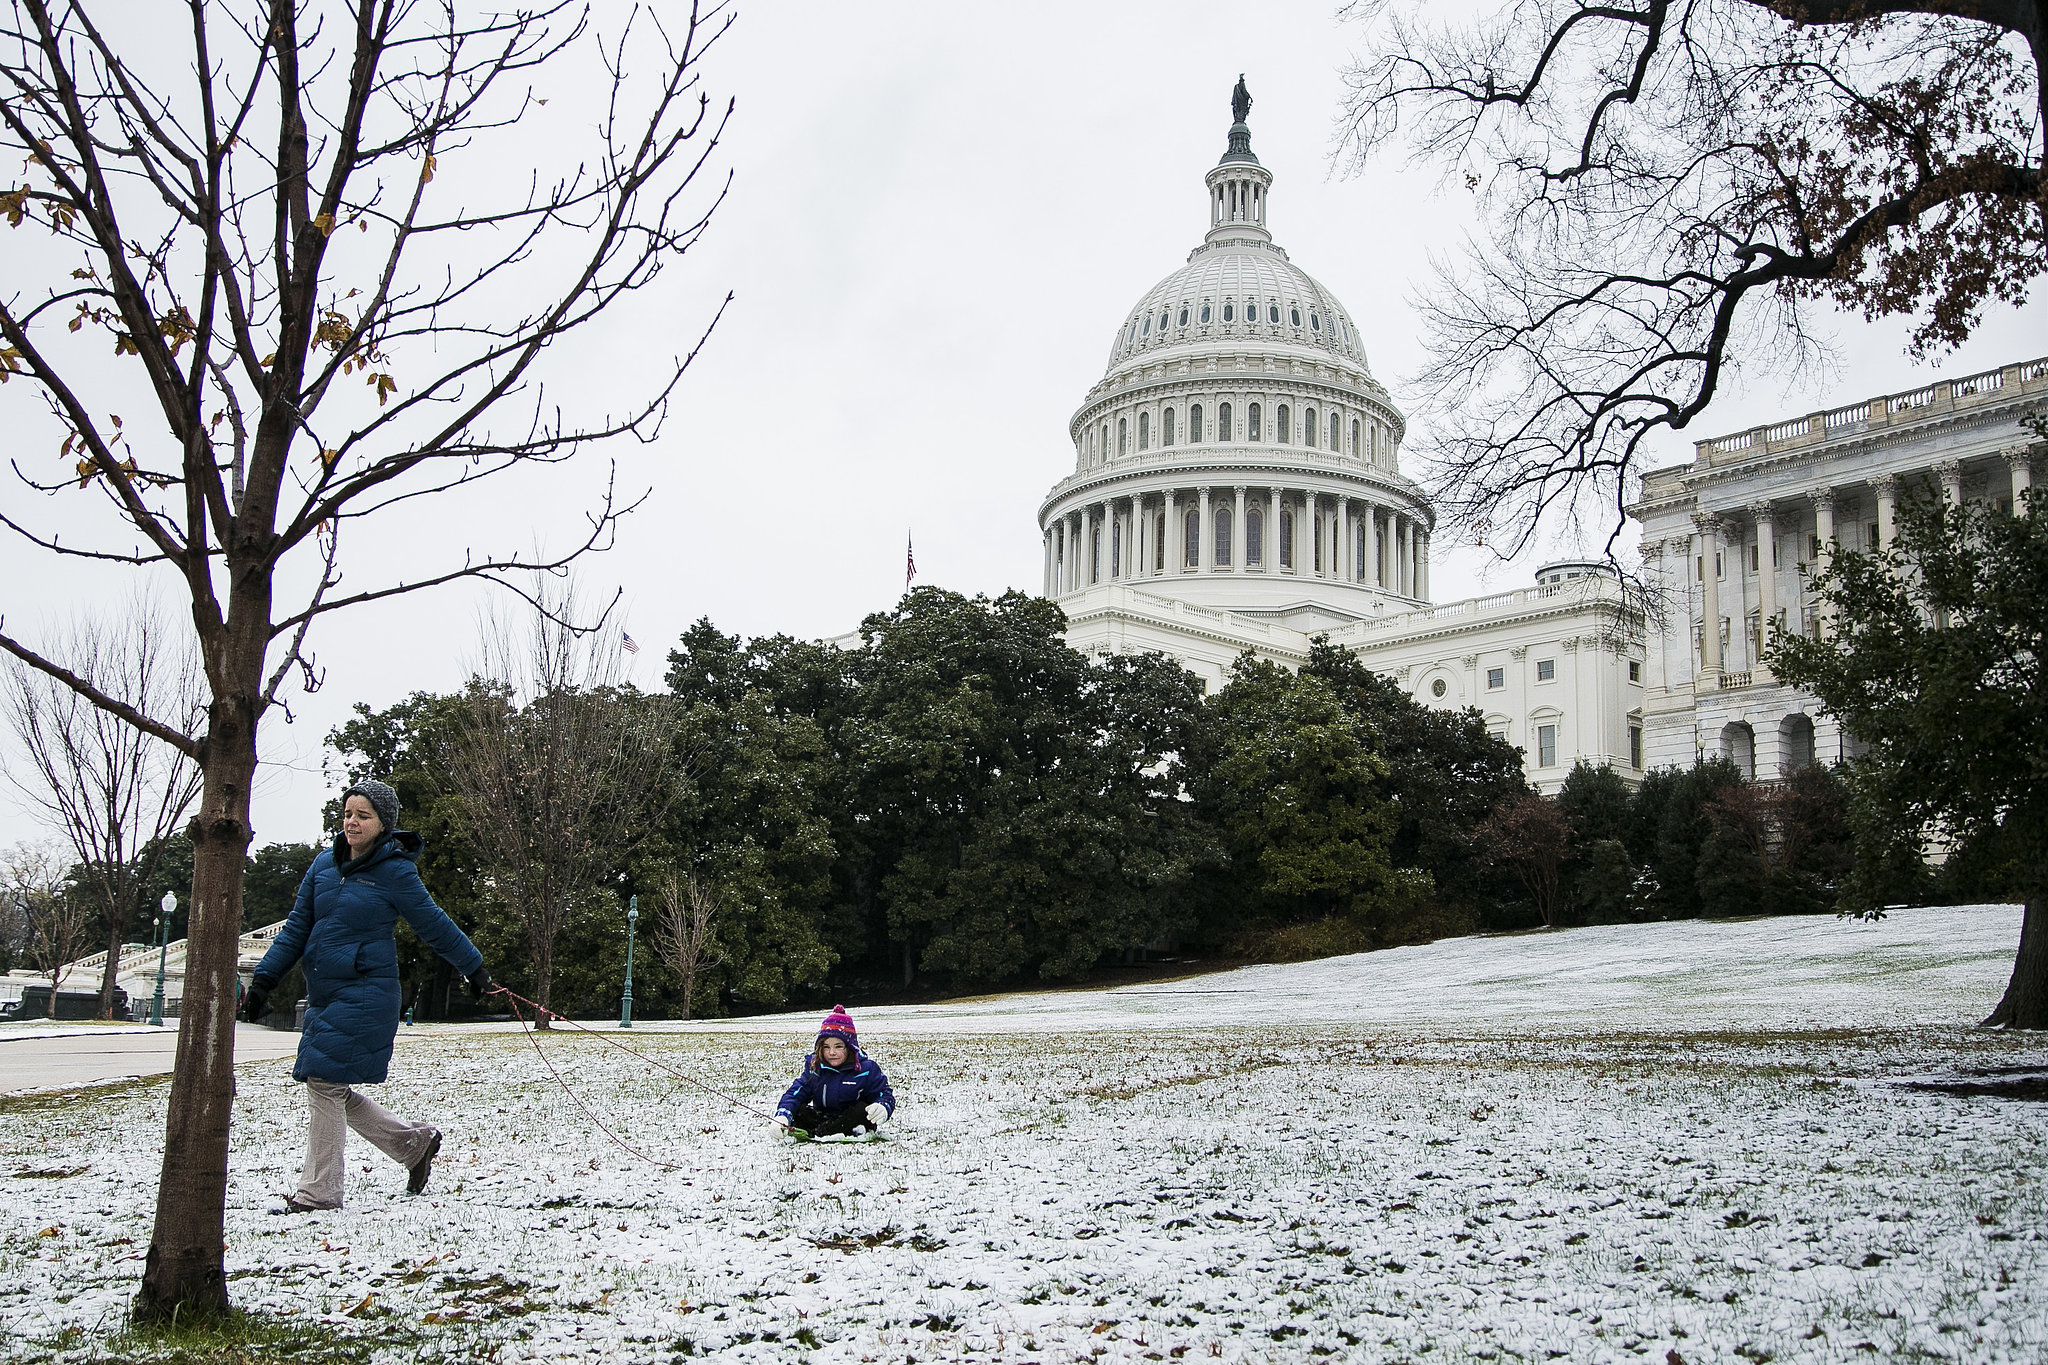 A woman pulled her daughter across snow-covered grass in Washington DC.